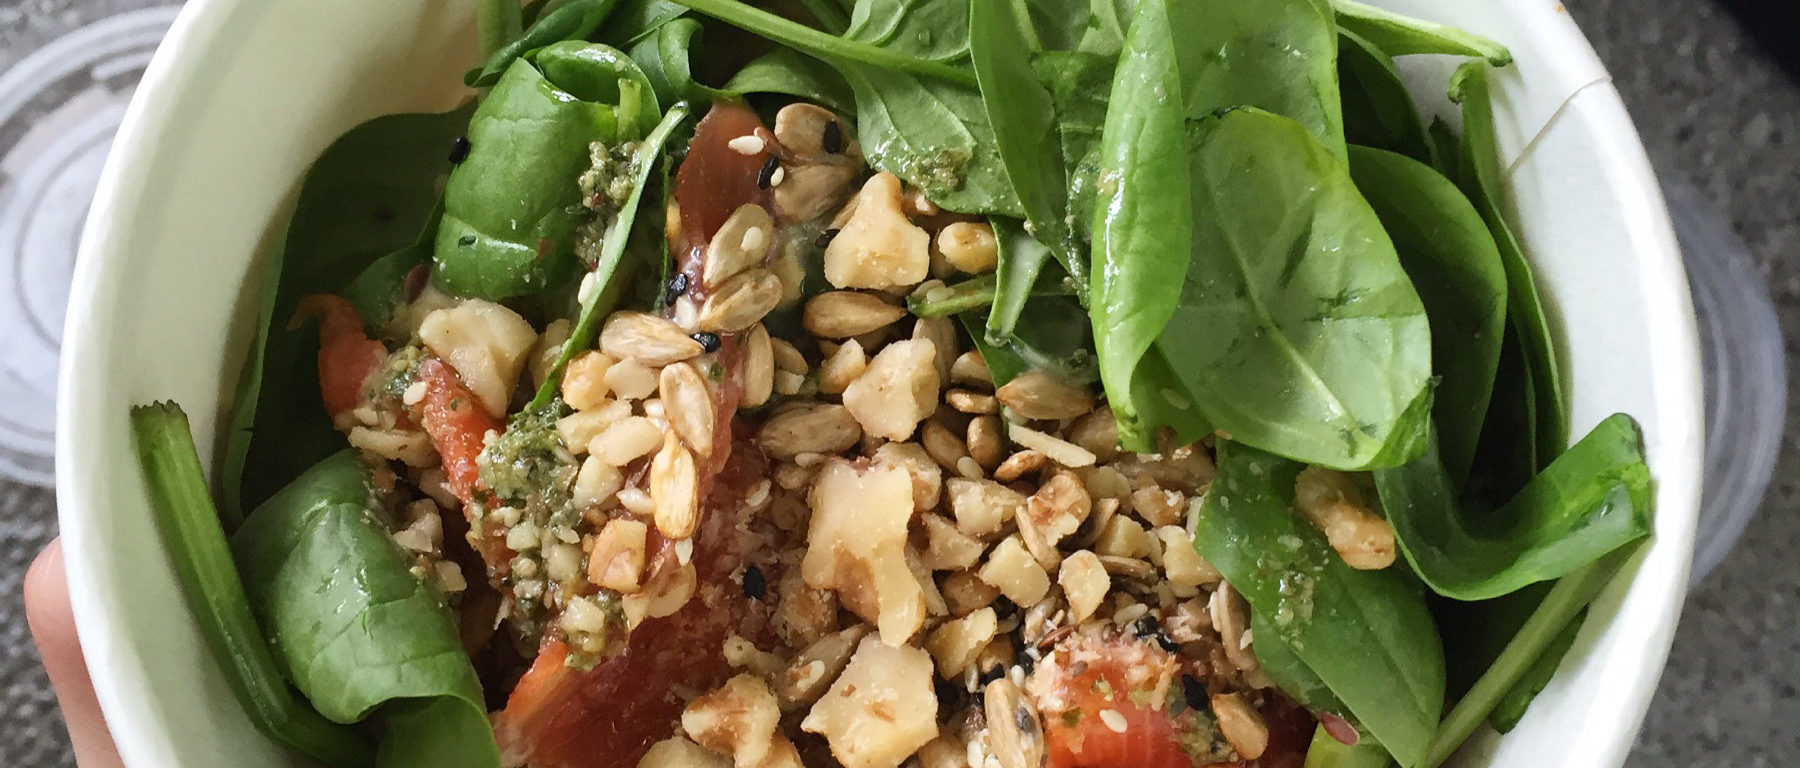 Salad and healthy rice bowl with salmon